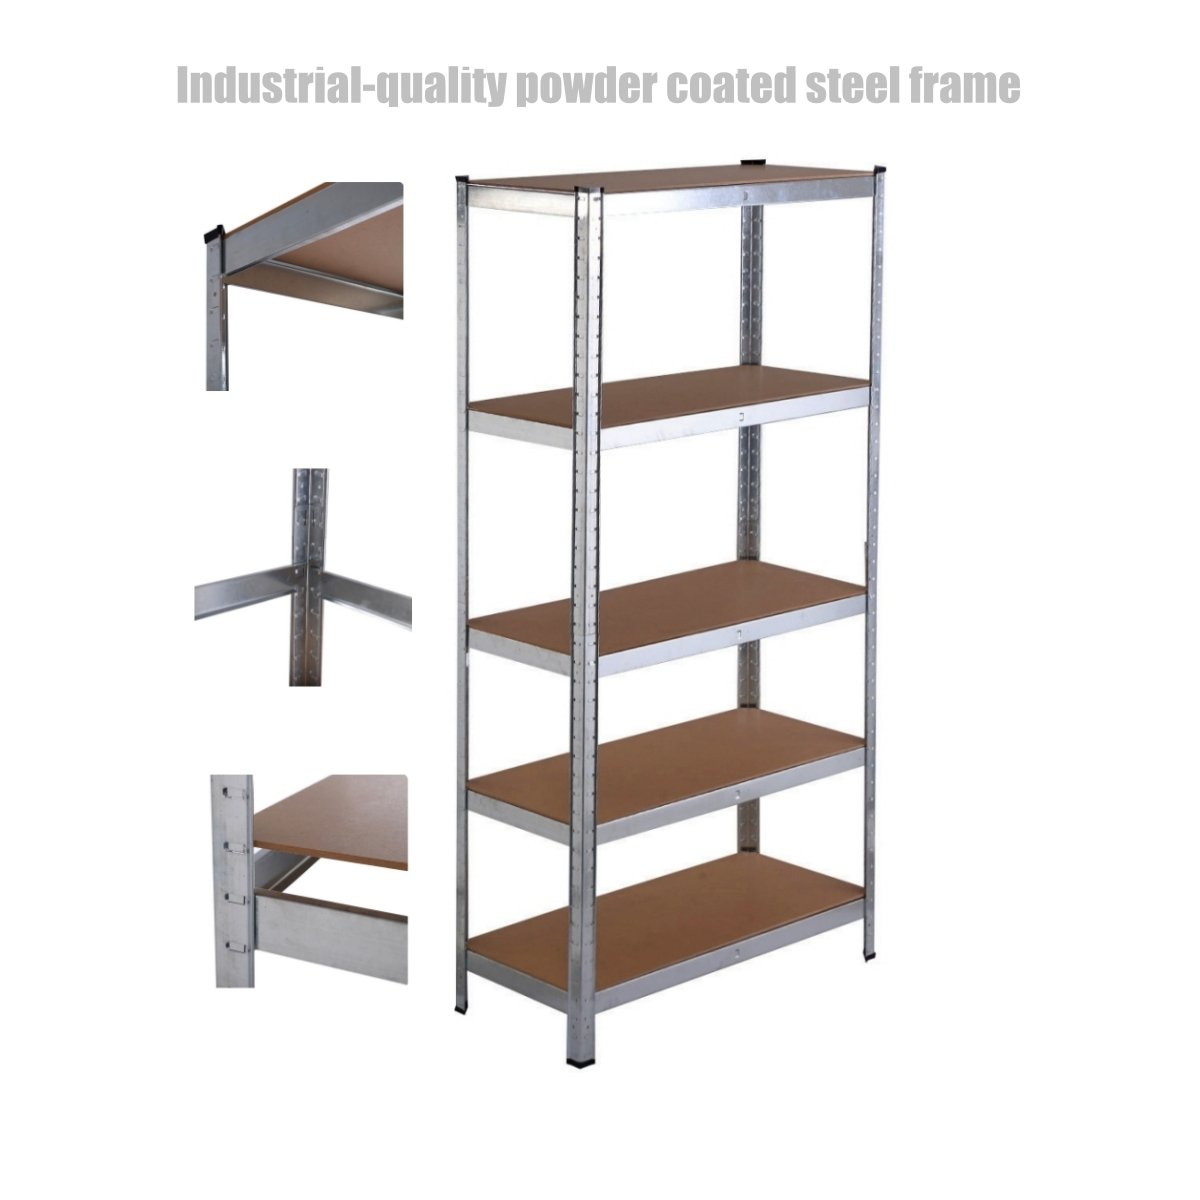 5 Tier Heavy Duty Shelf School Office Home Garage Solid Steel Metal Storage Rack Space-Saving Design Adjustable Height Shelves - 35.4'' x 15.7'' x 70.8'' Silver #1314